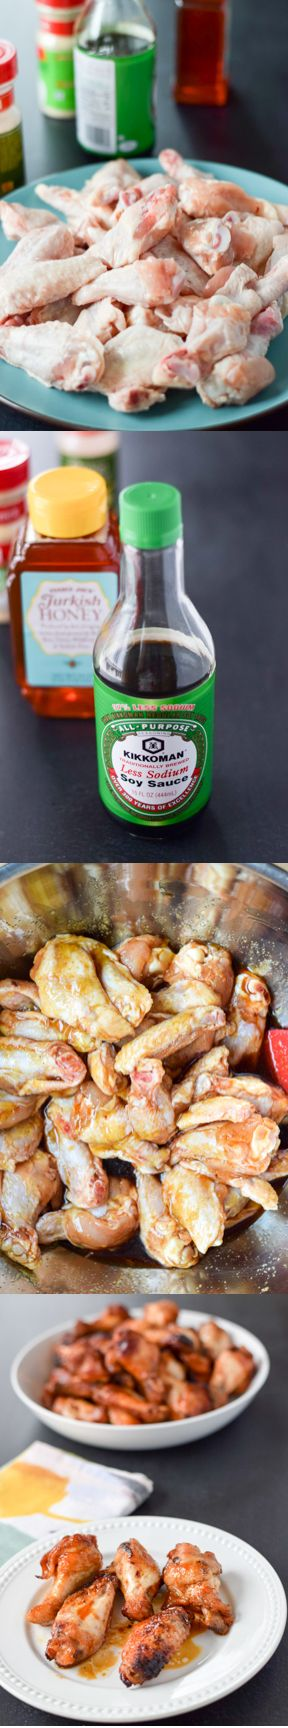 Hubby and I just LOVE, love, love these wings. They never disappoint and we're always in the mood. Start with good quality chicken wings! After that, it's a surefire recipe bound to please. And, as with most wing recipes, it scales beautifully. Bring on the hungry hordes! http://ddel.co/bkdwngs